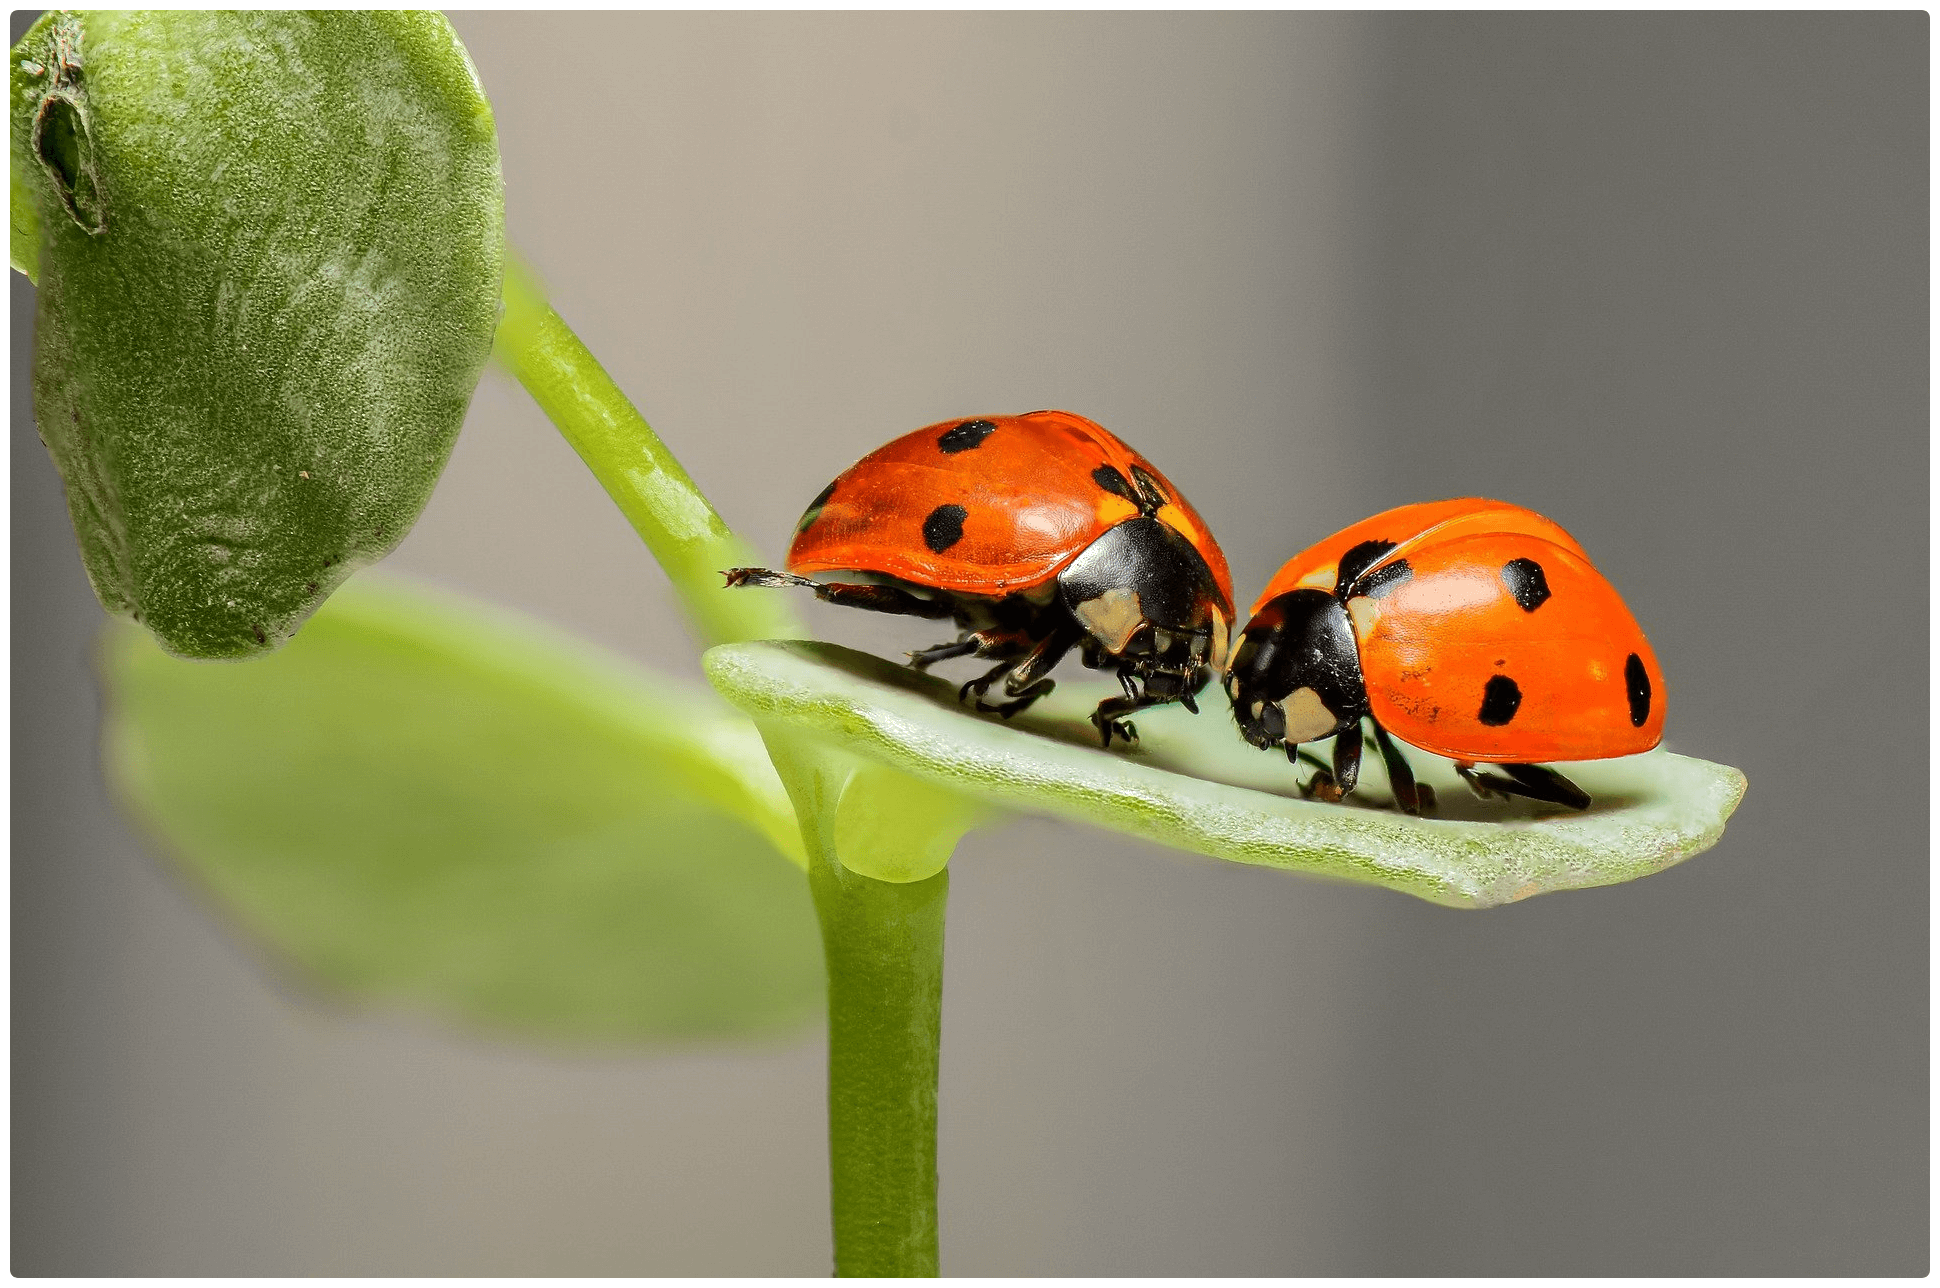 Two ladybirds on a leaf.